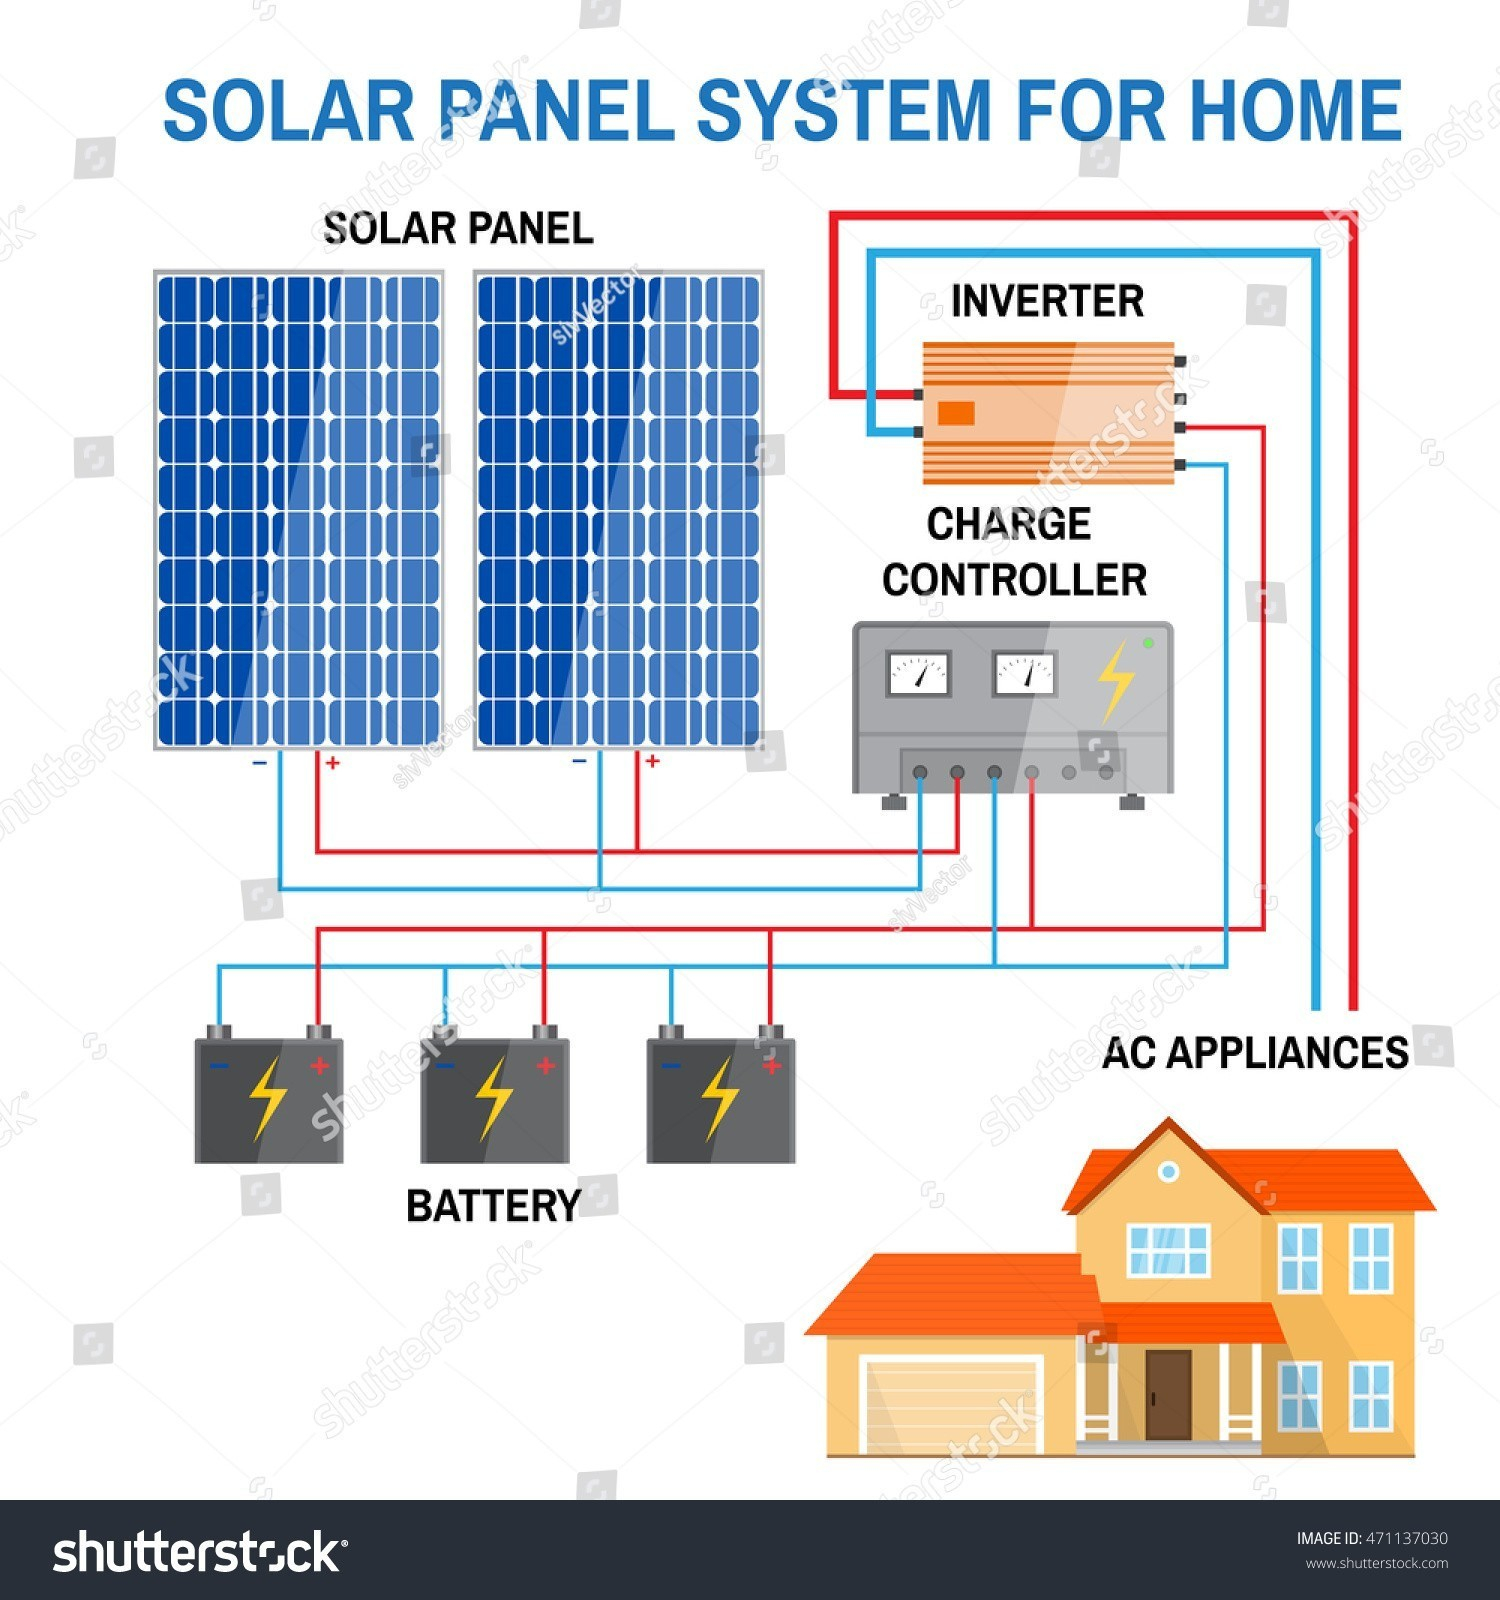 hight resolution of rv solar panel installation wiring diagram wiring diagram solar panels inverter best wiring diagram for